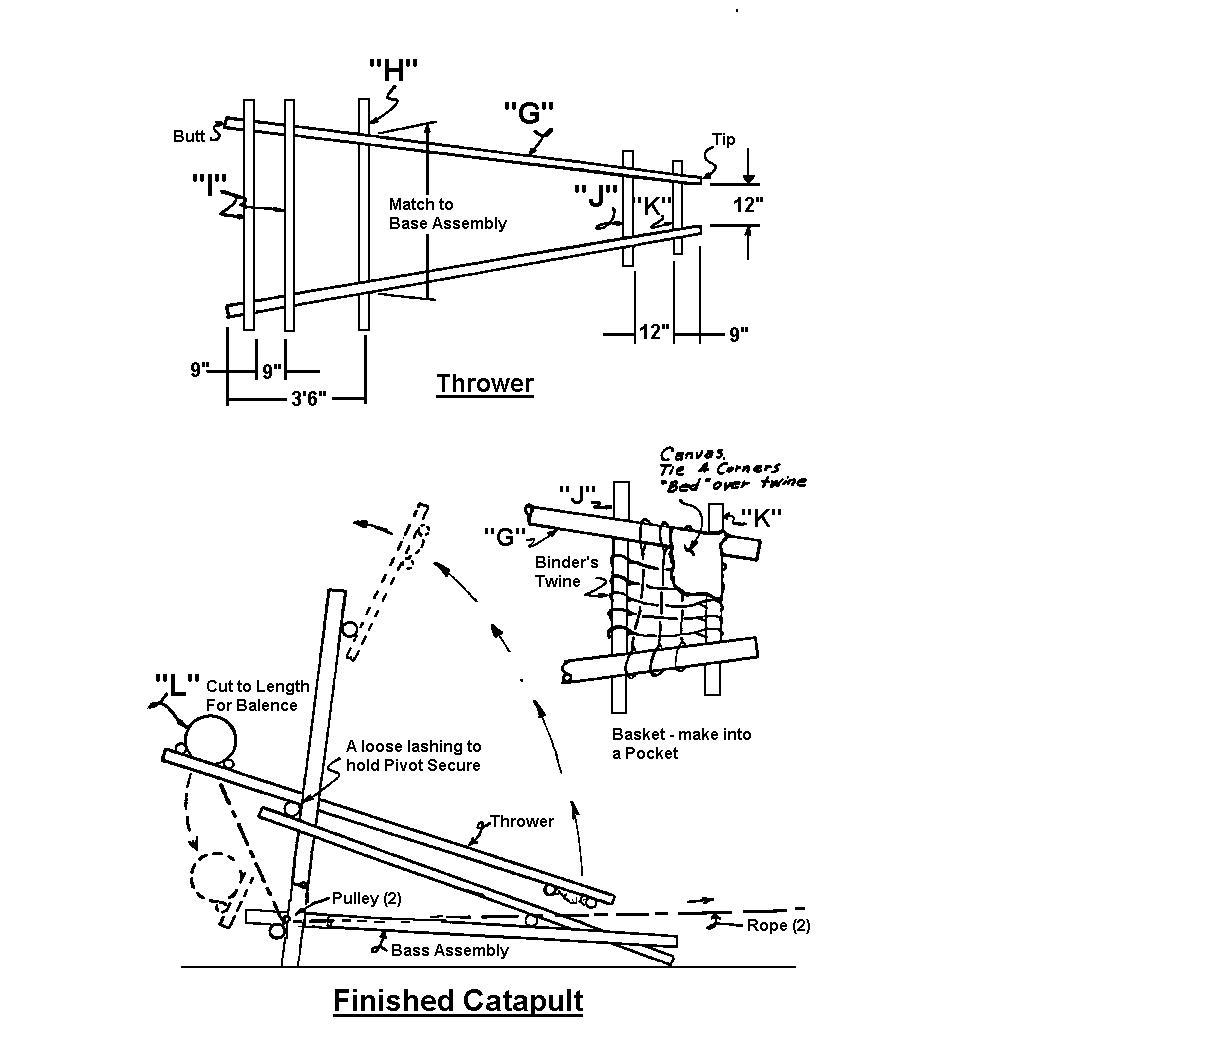 catapult jpg rh tr52 com Early Catapult Diagram parts of a catapult diagram